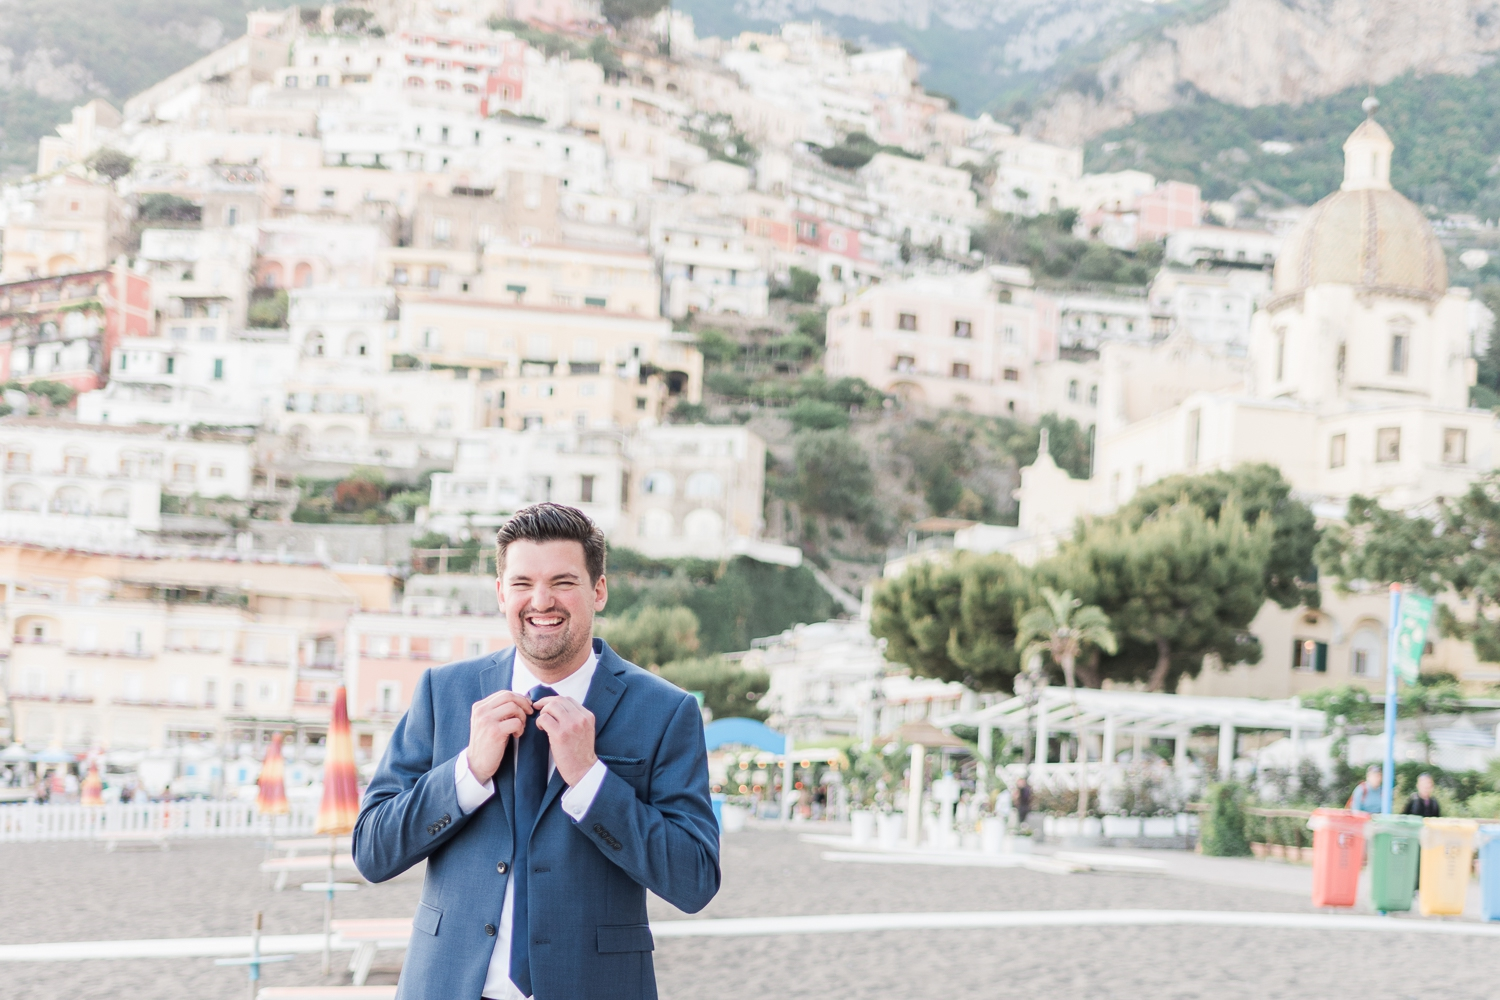 positano-wedding-photographer 30.jpg